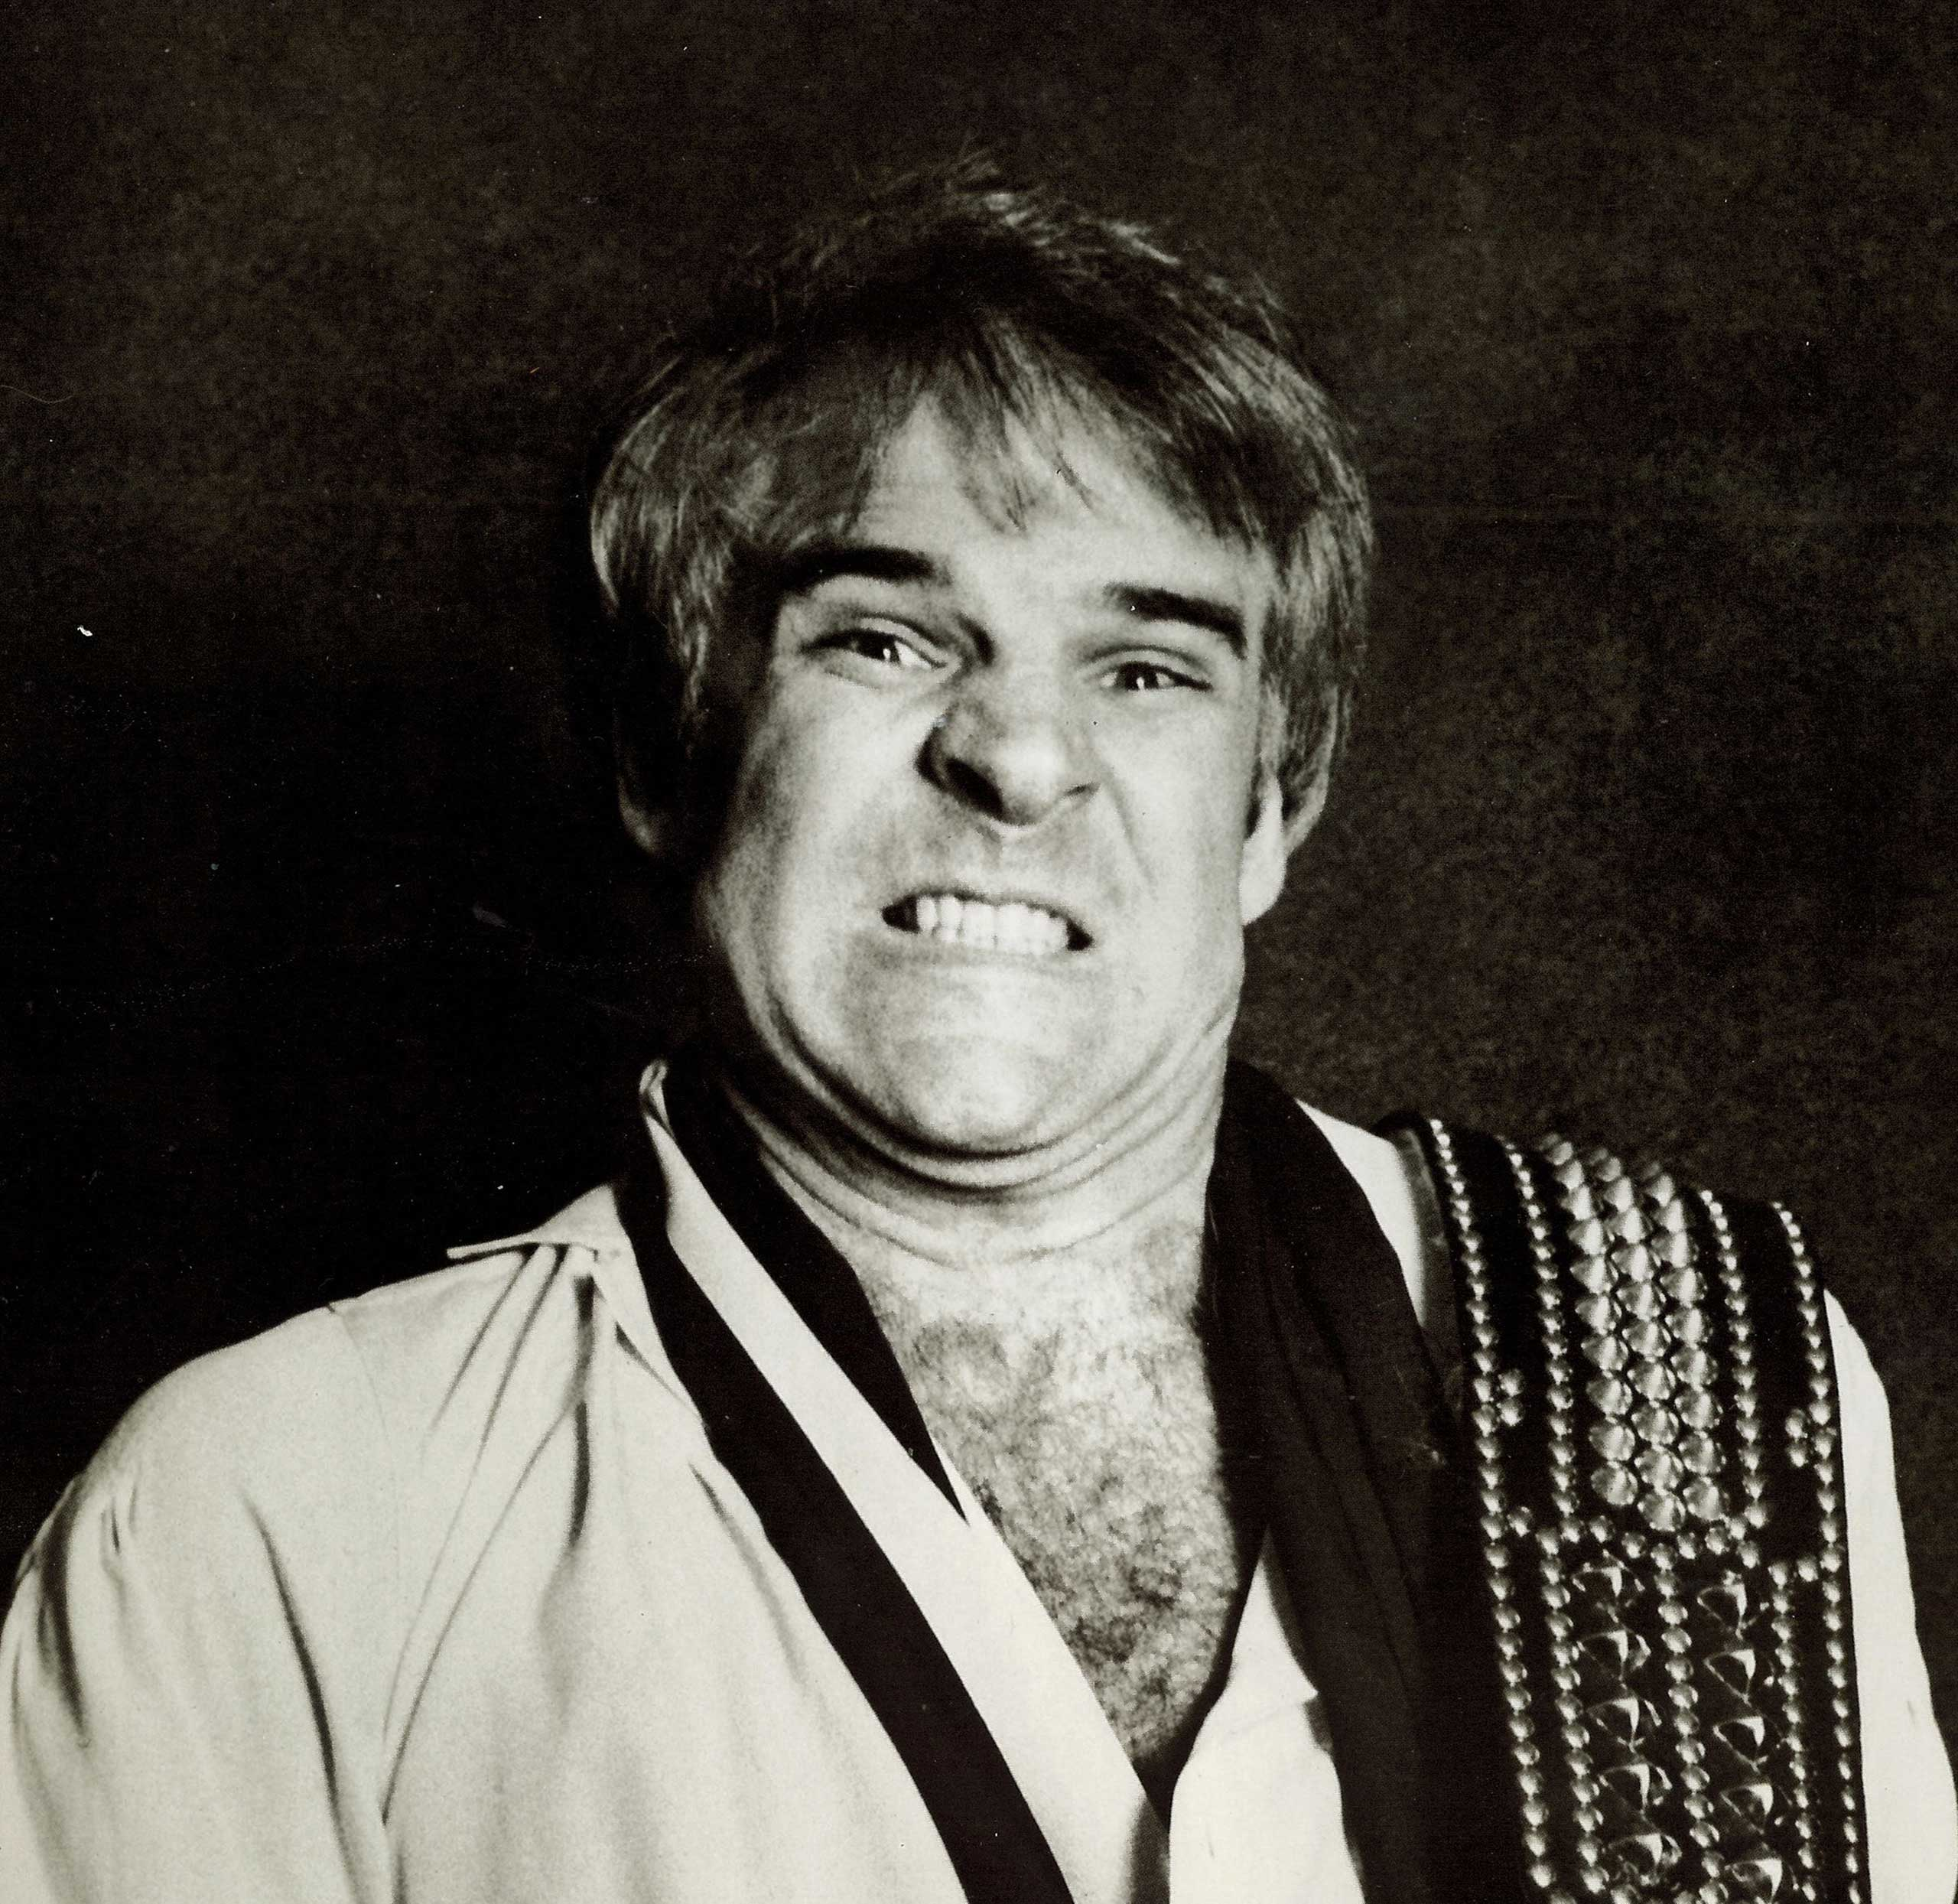 """Steve Martin's 1978 comedy album """"A Wild and Crazy Guy"""" was notable for eschewing formulaic jokes and for bits like """"King Tut."""" (Warner Records/Library of Congress)"""